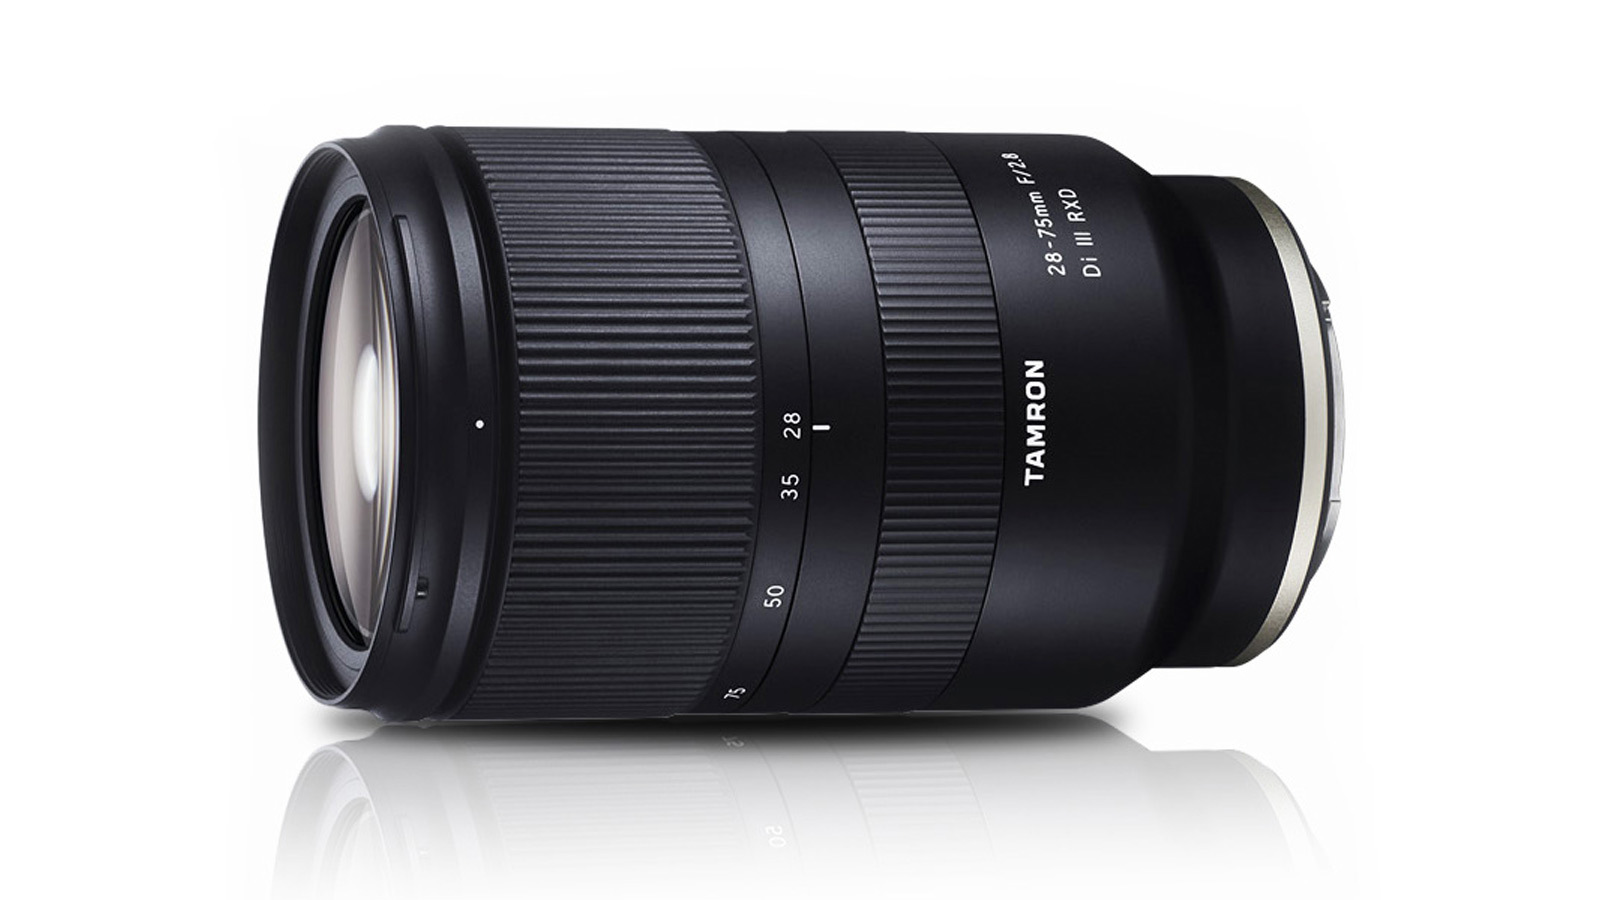 Tamron Announces New 28-75mm F/2.8 Lens for Sony FE